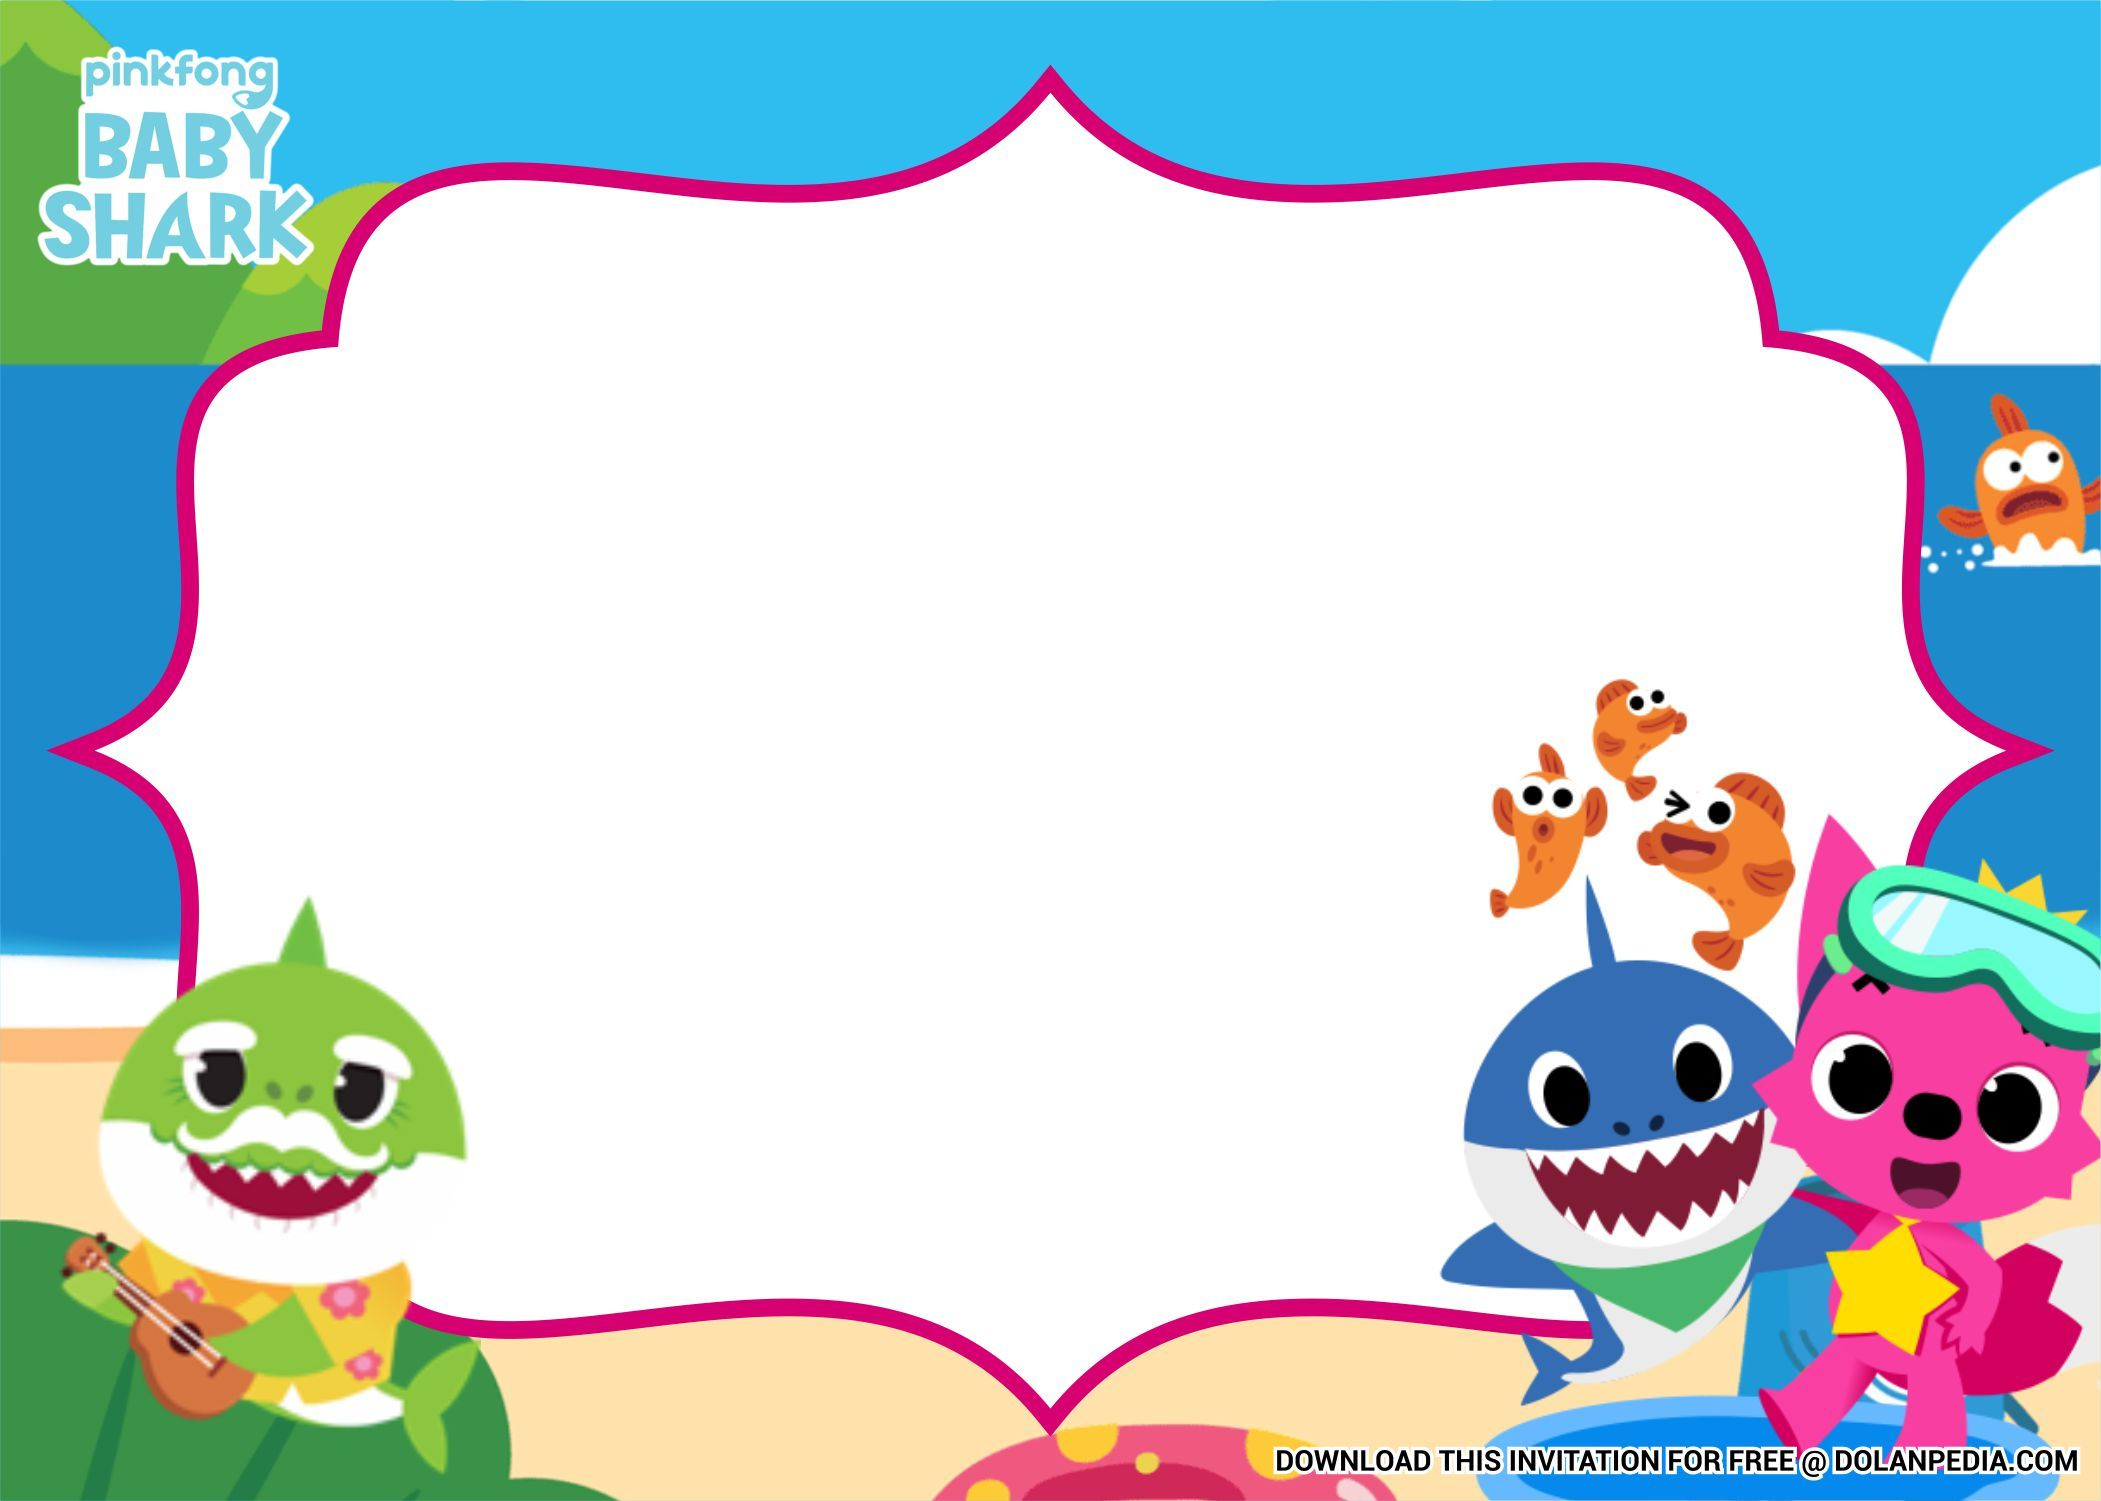 (FREE Printable) - Pinkfong Baby Shark Birthday Invitation ...